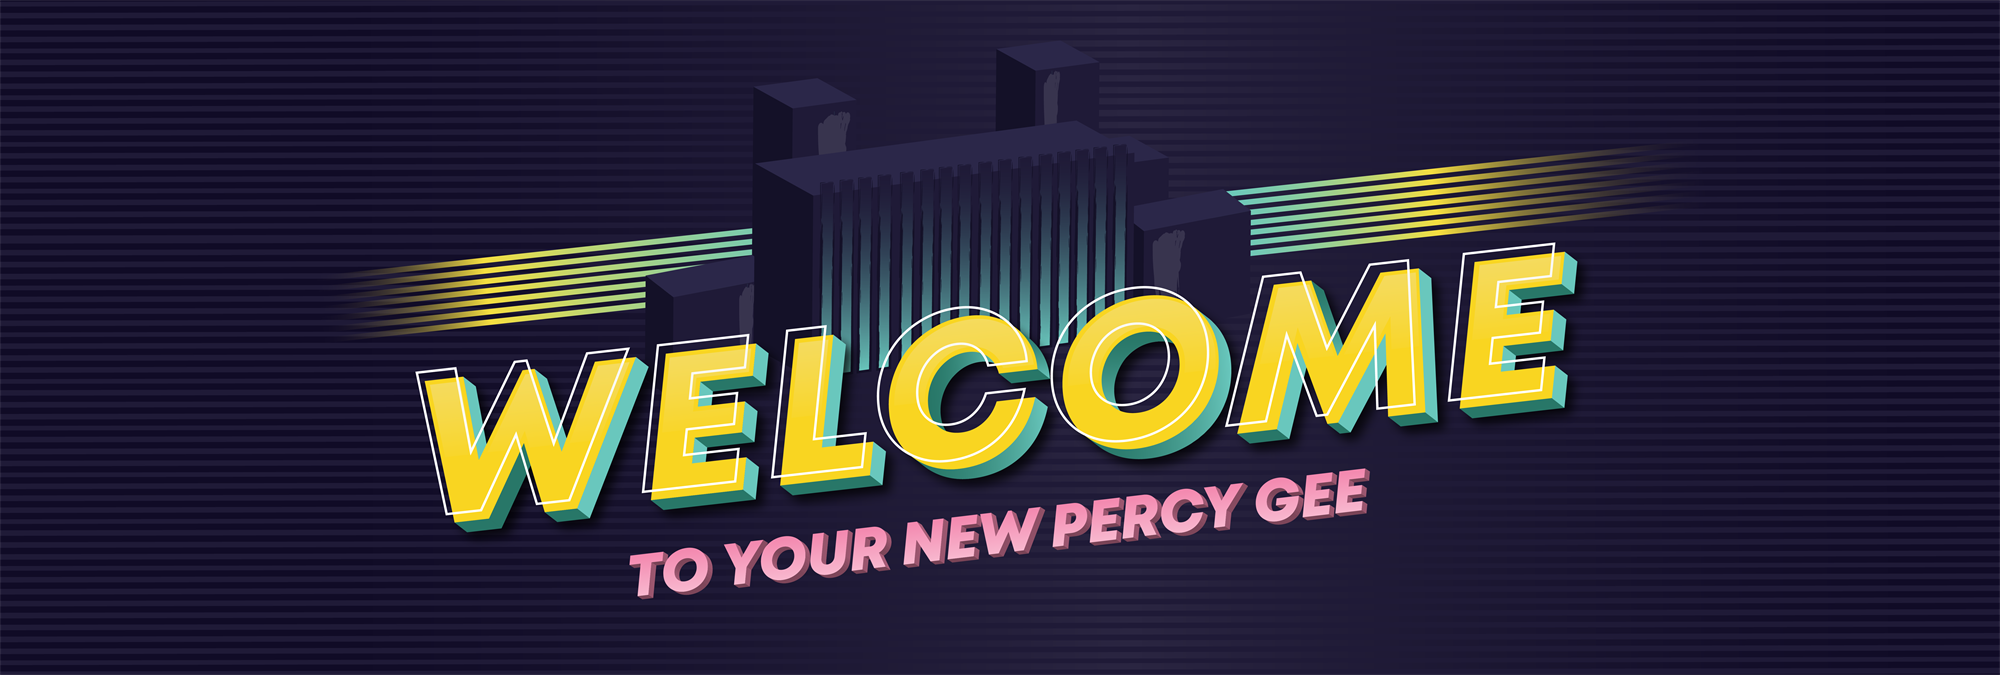 Welome to your new Percy Gee